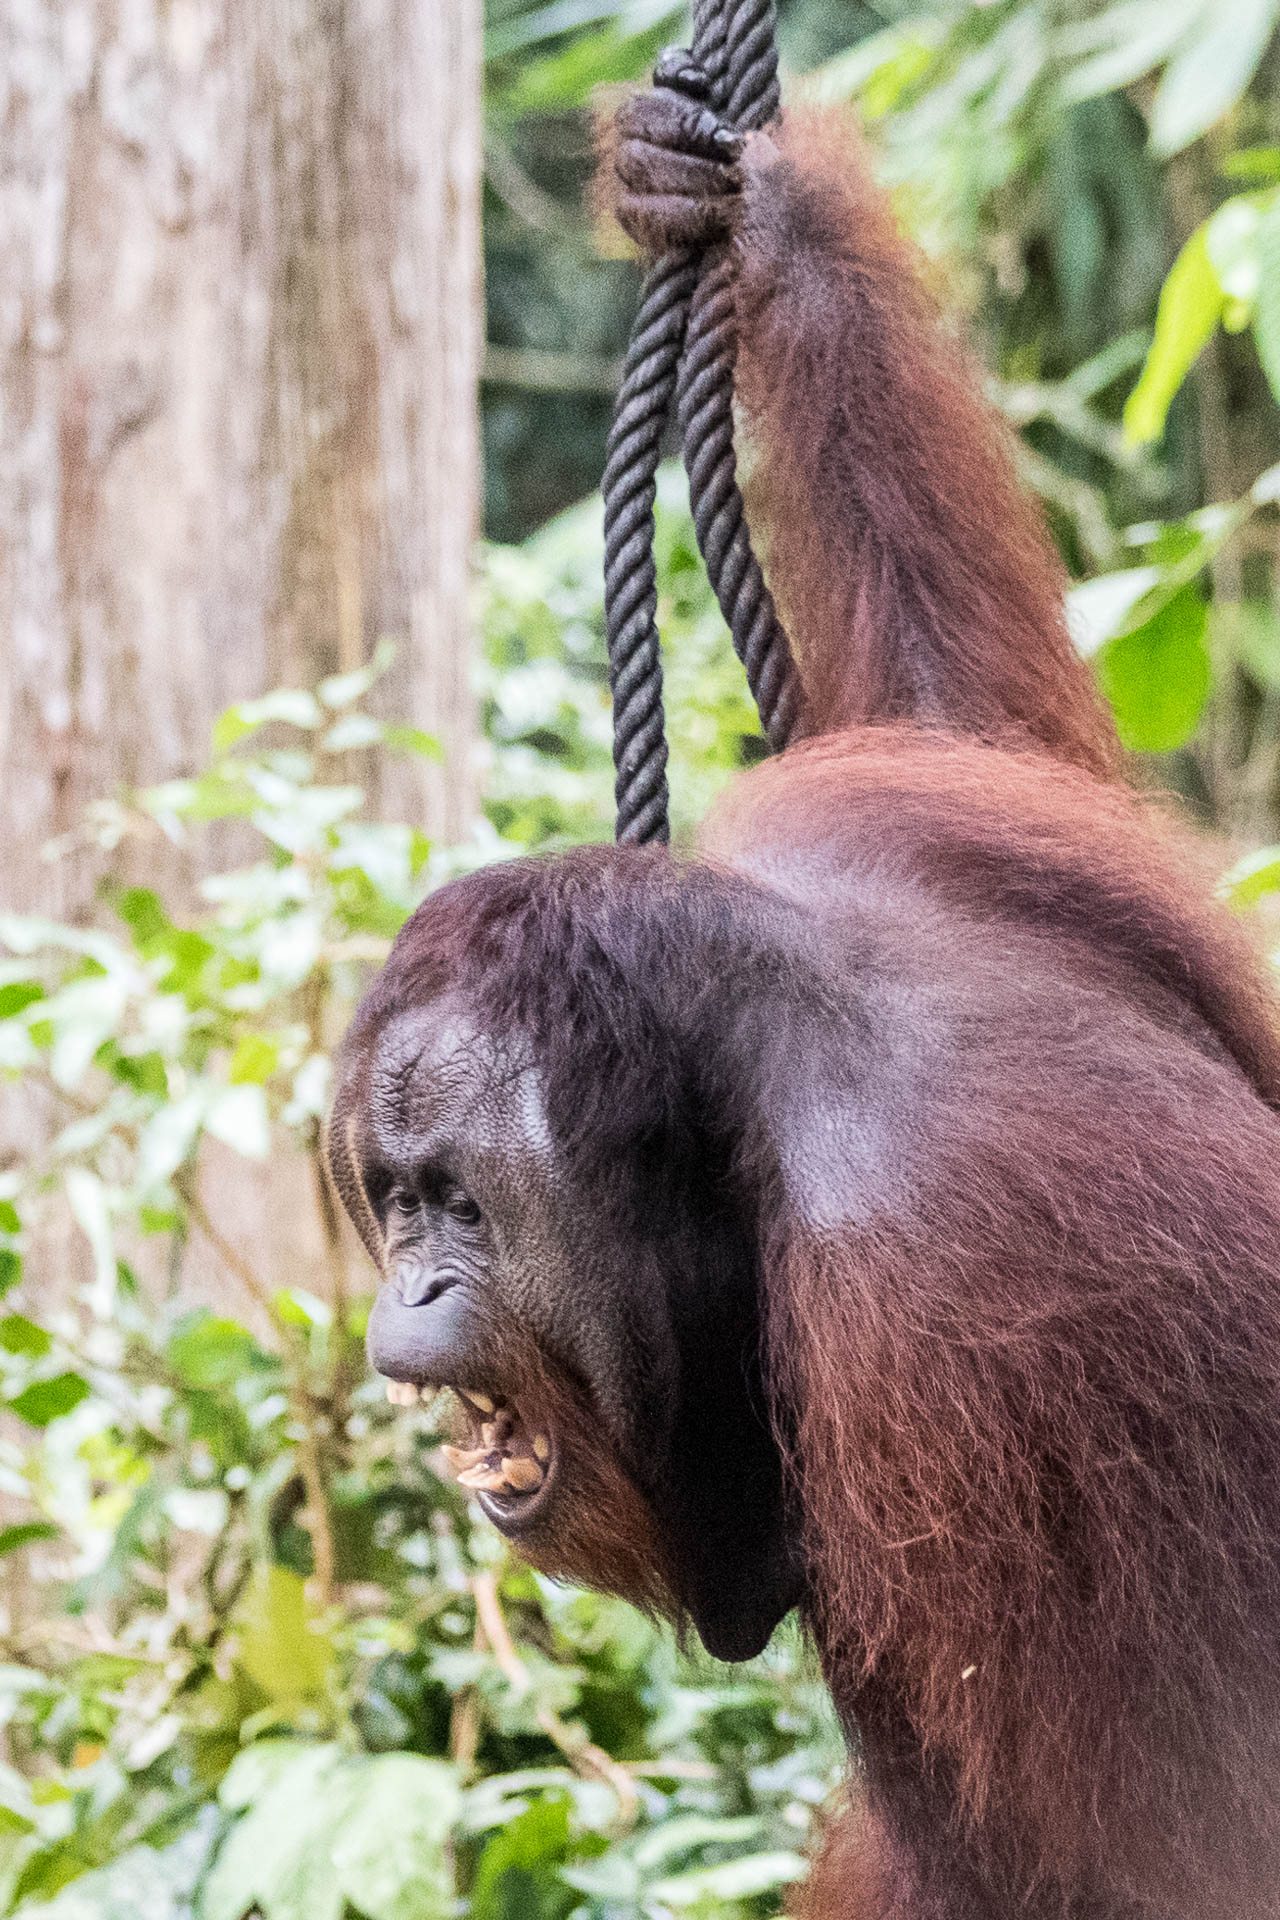 Picture of angry alpha male orangutan.